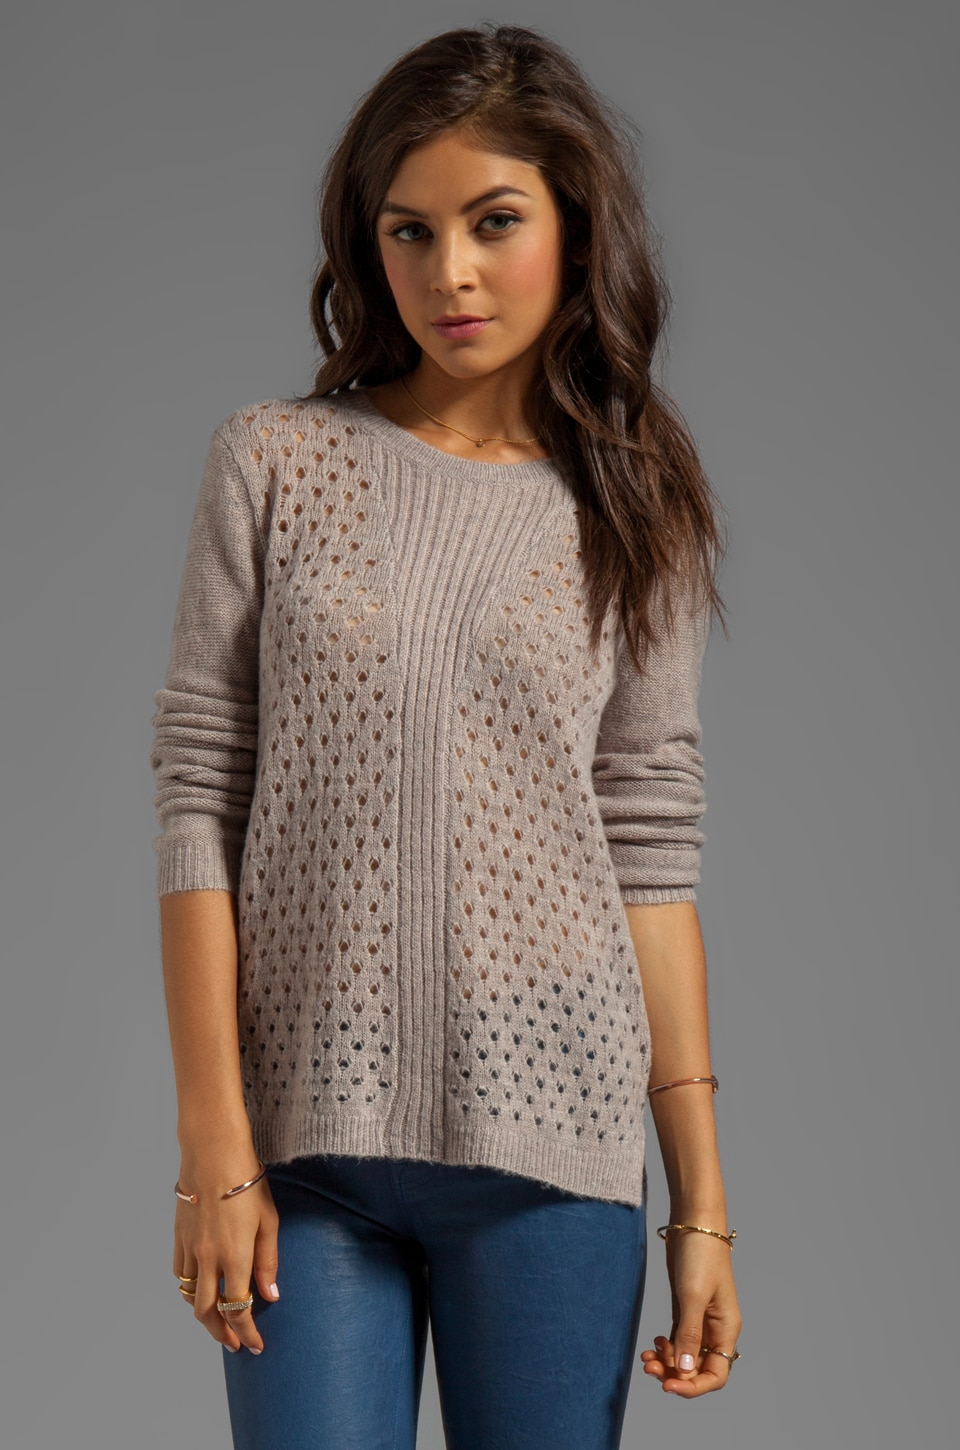 Rebecca Taylor Open Stitch Pullover in Fawn/Chisel Heather